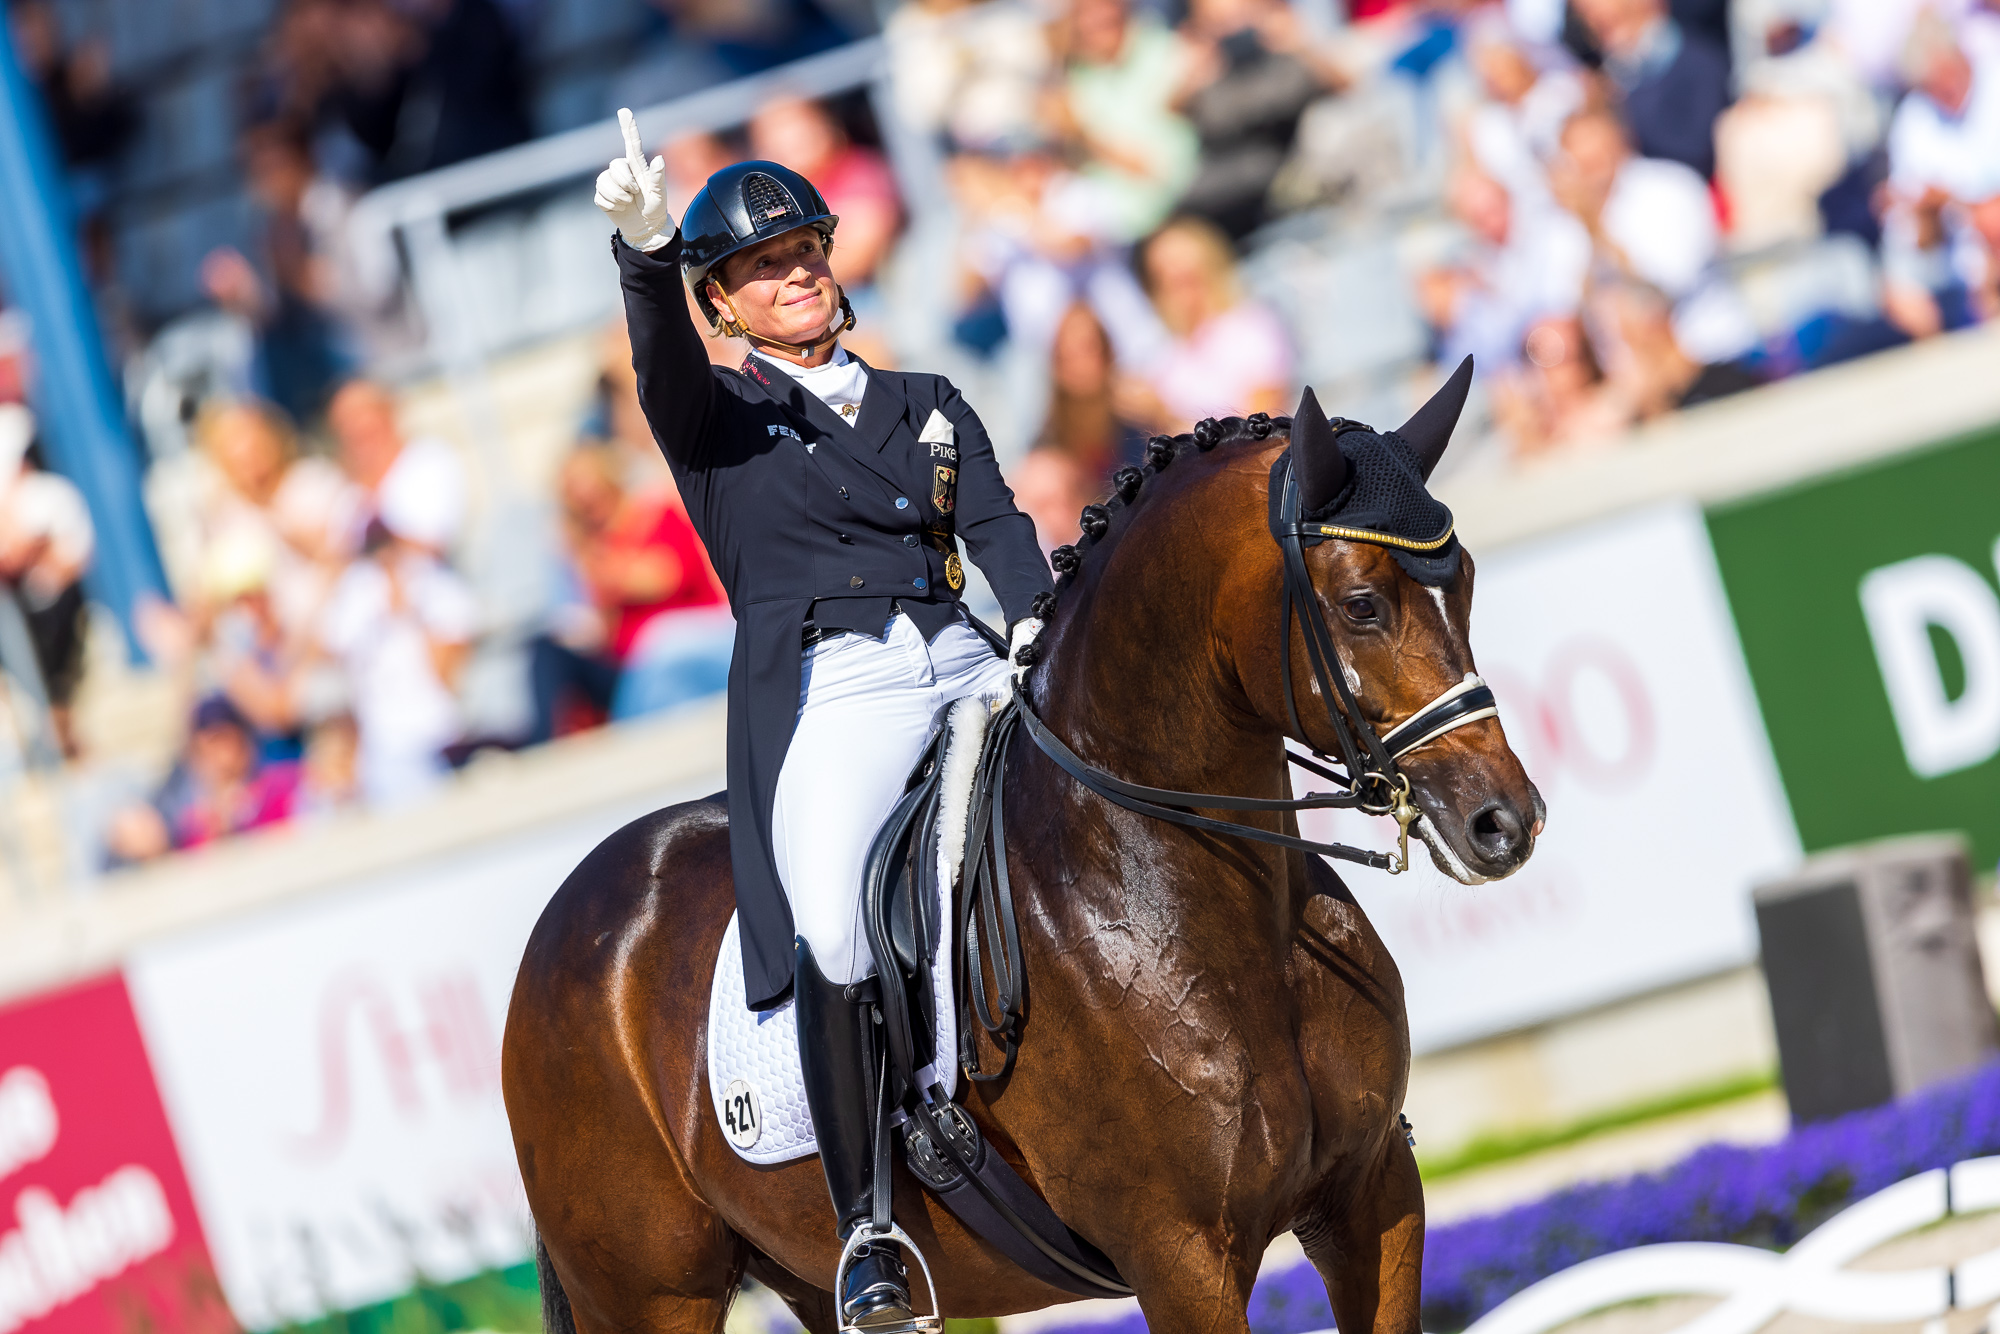 CHIO Aachen: Werth takes revenge in Freestyle